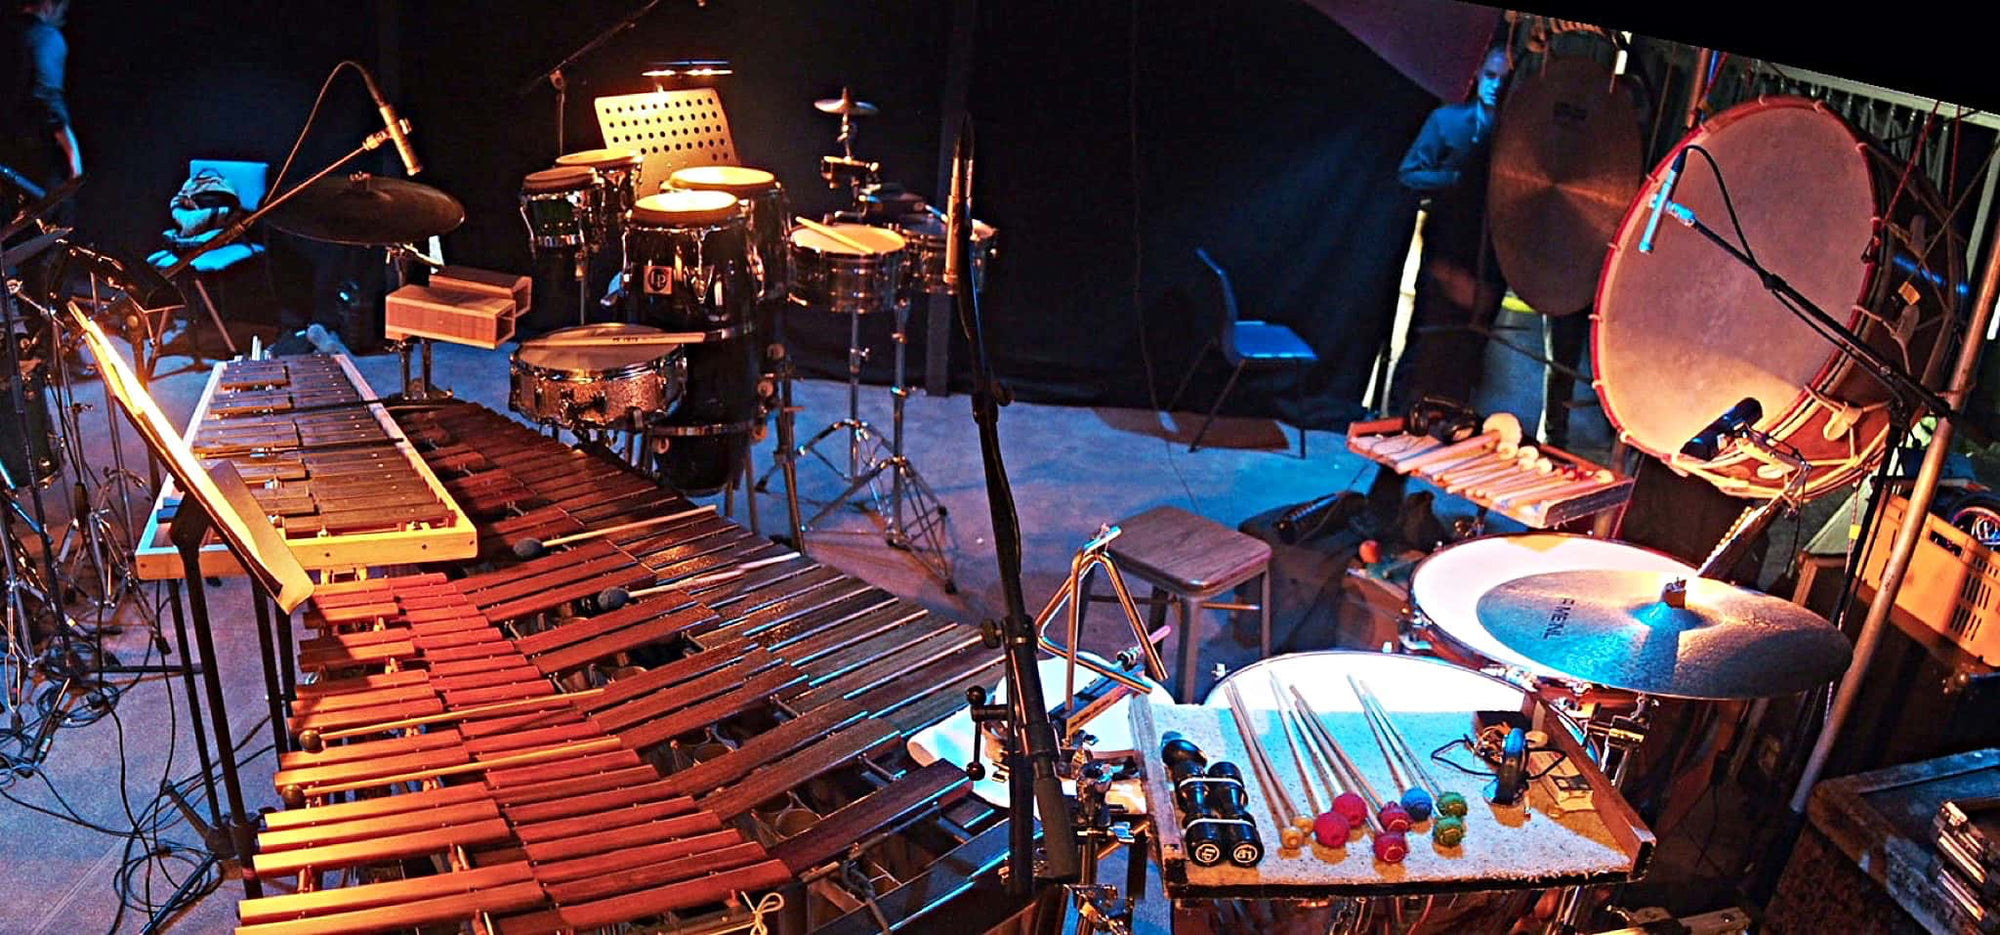 Craig Given's percussion setup for Showbiz Christchurch's production of Evita at the Isaac Theatre Royal in Christchurch, New Zealand.